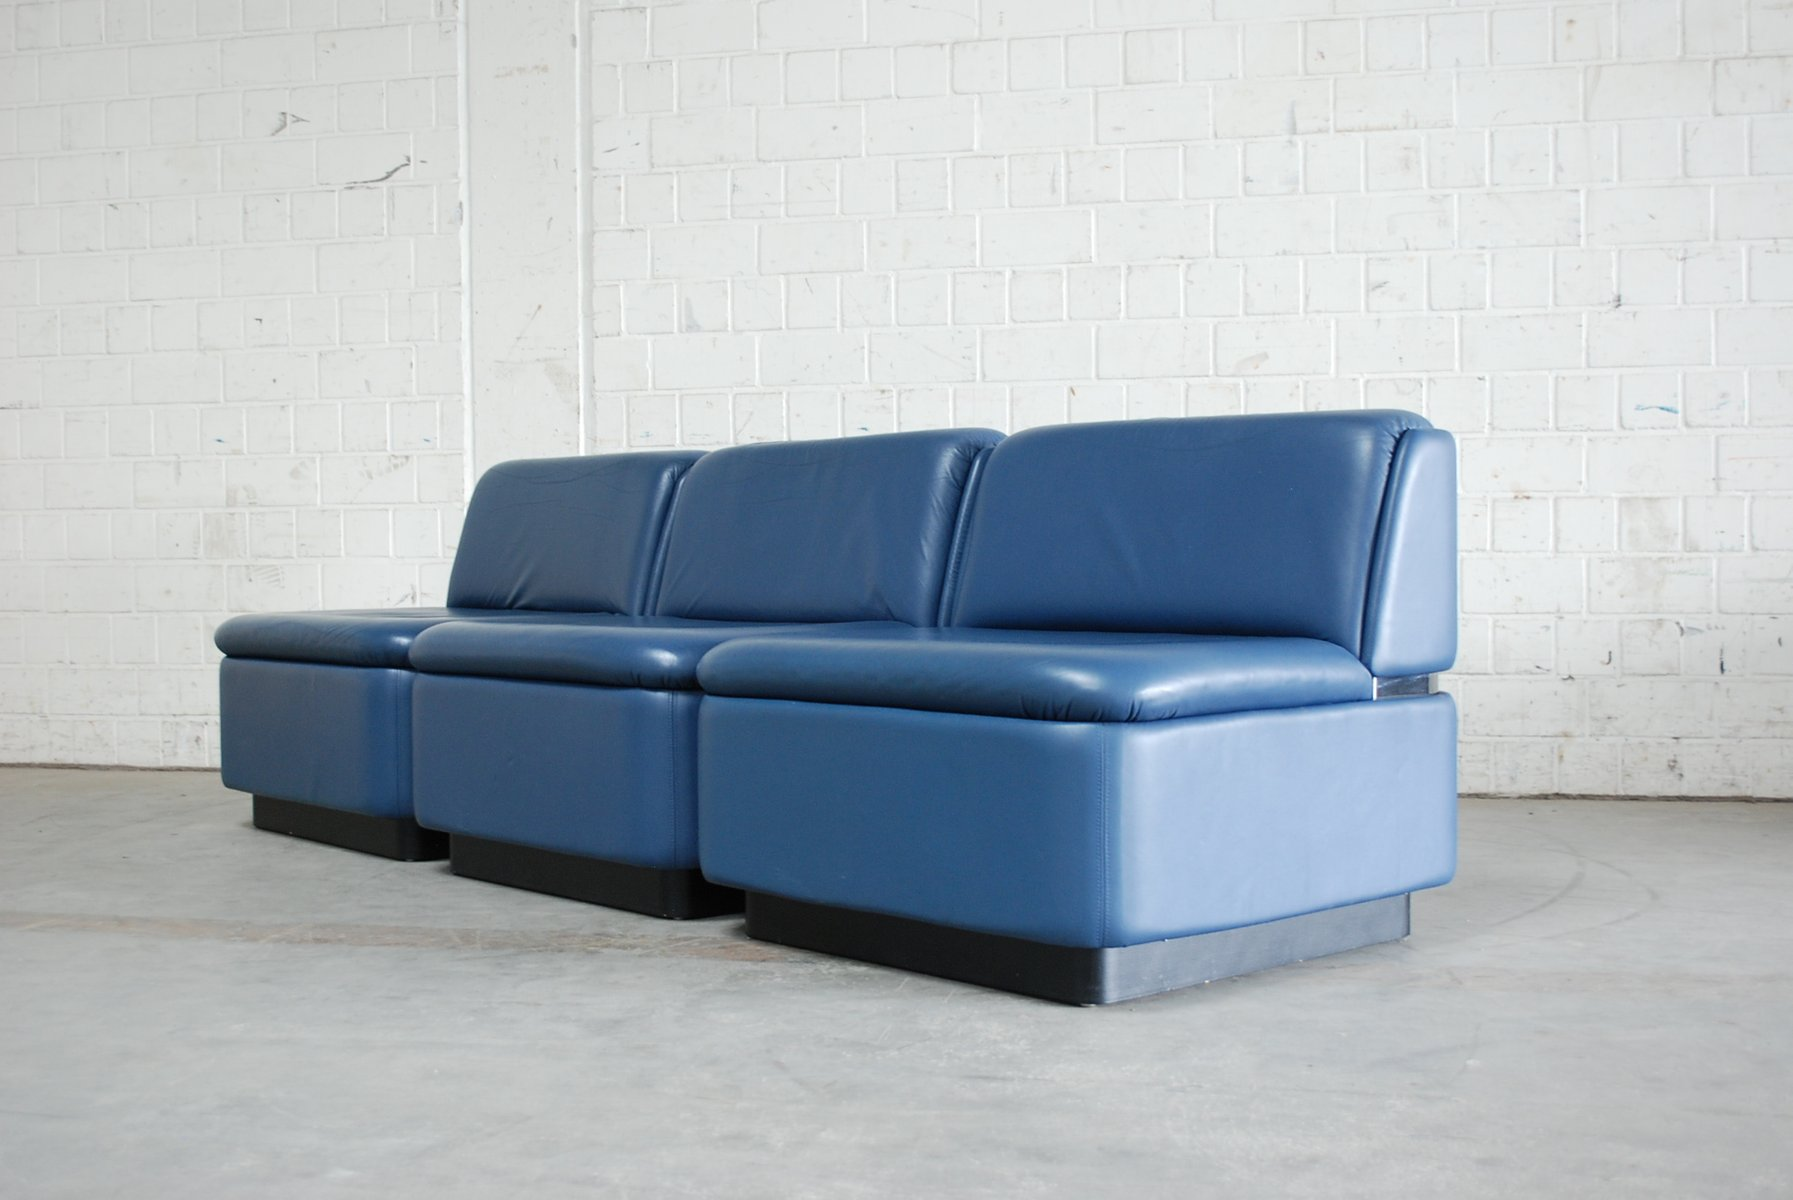 Teal blue leather sofa thesofa for Blue leather couch